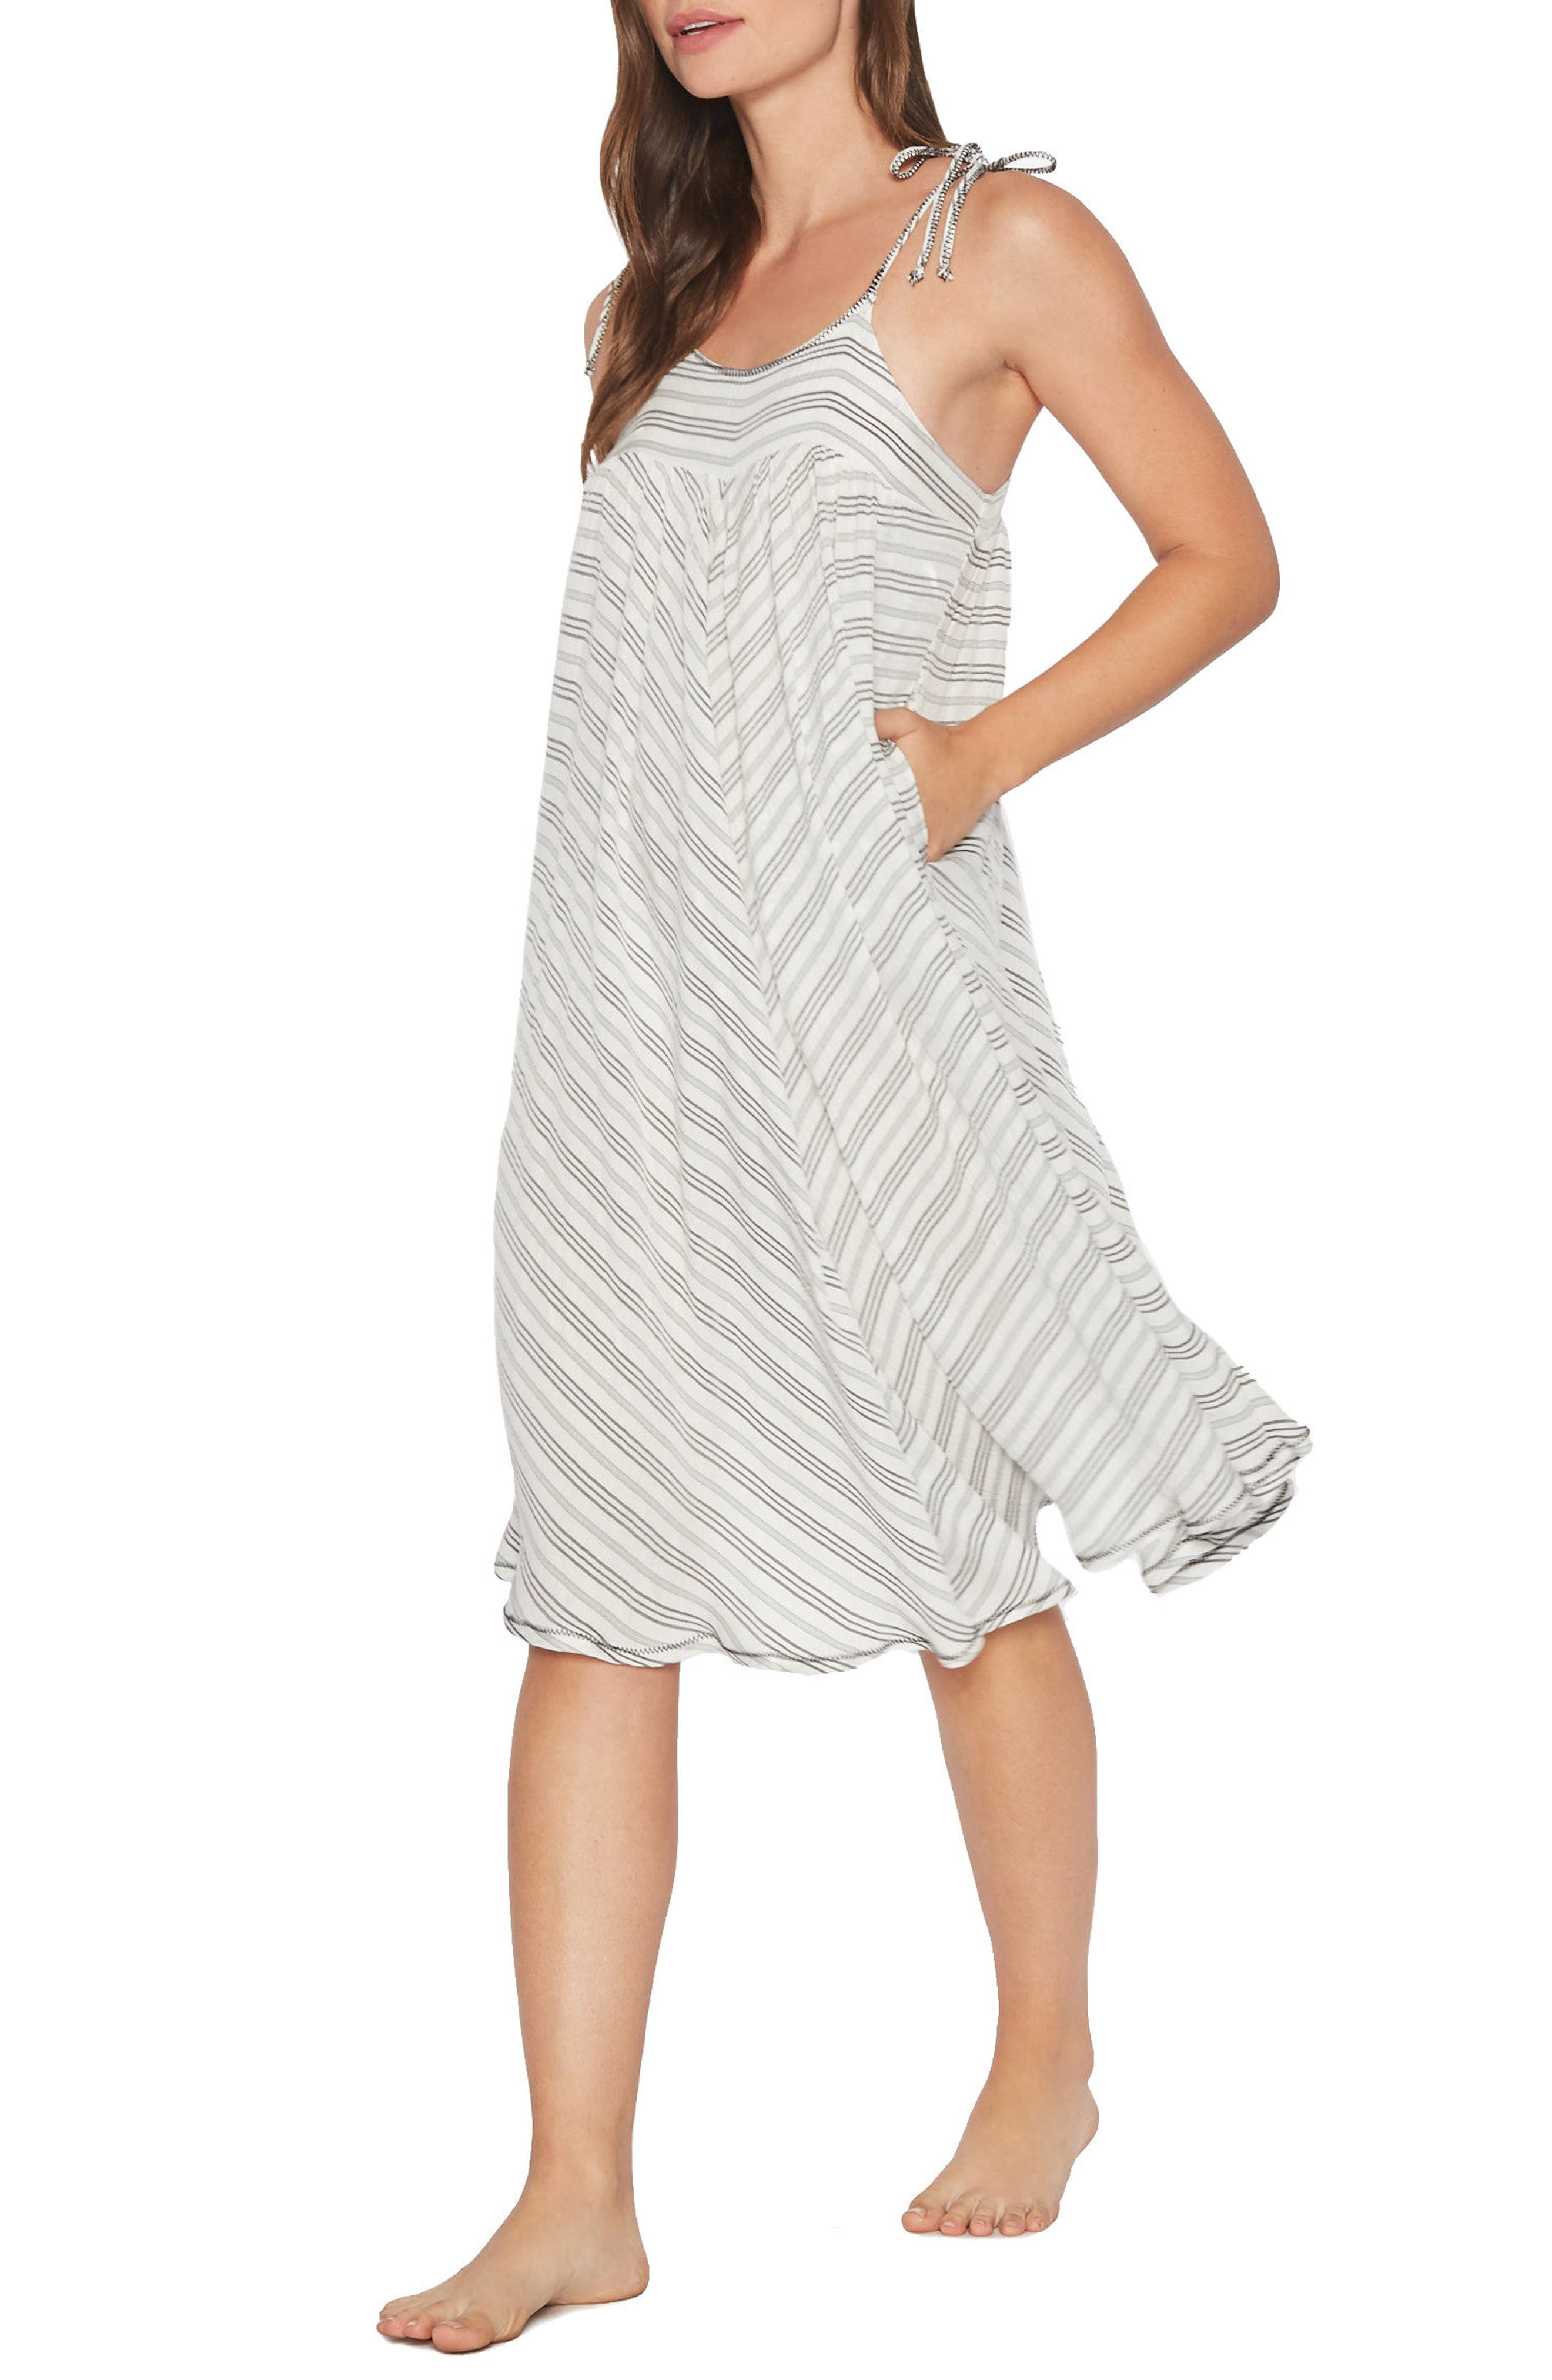 Norah Stripe Cover-Up Dress,                         Main,                         color, Grey/ White